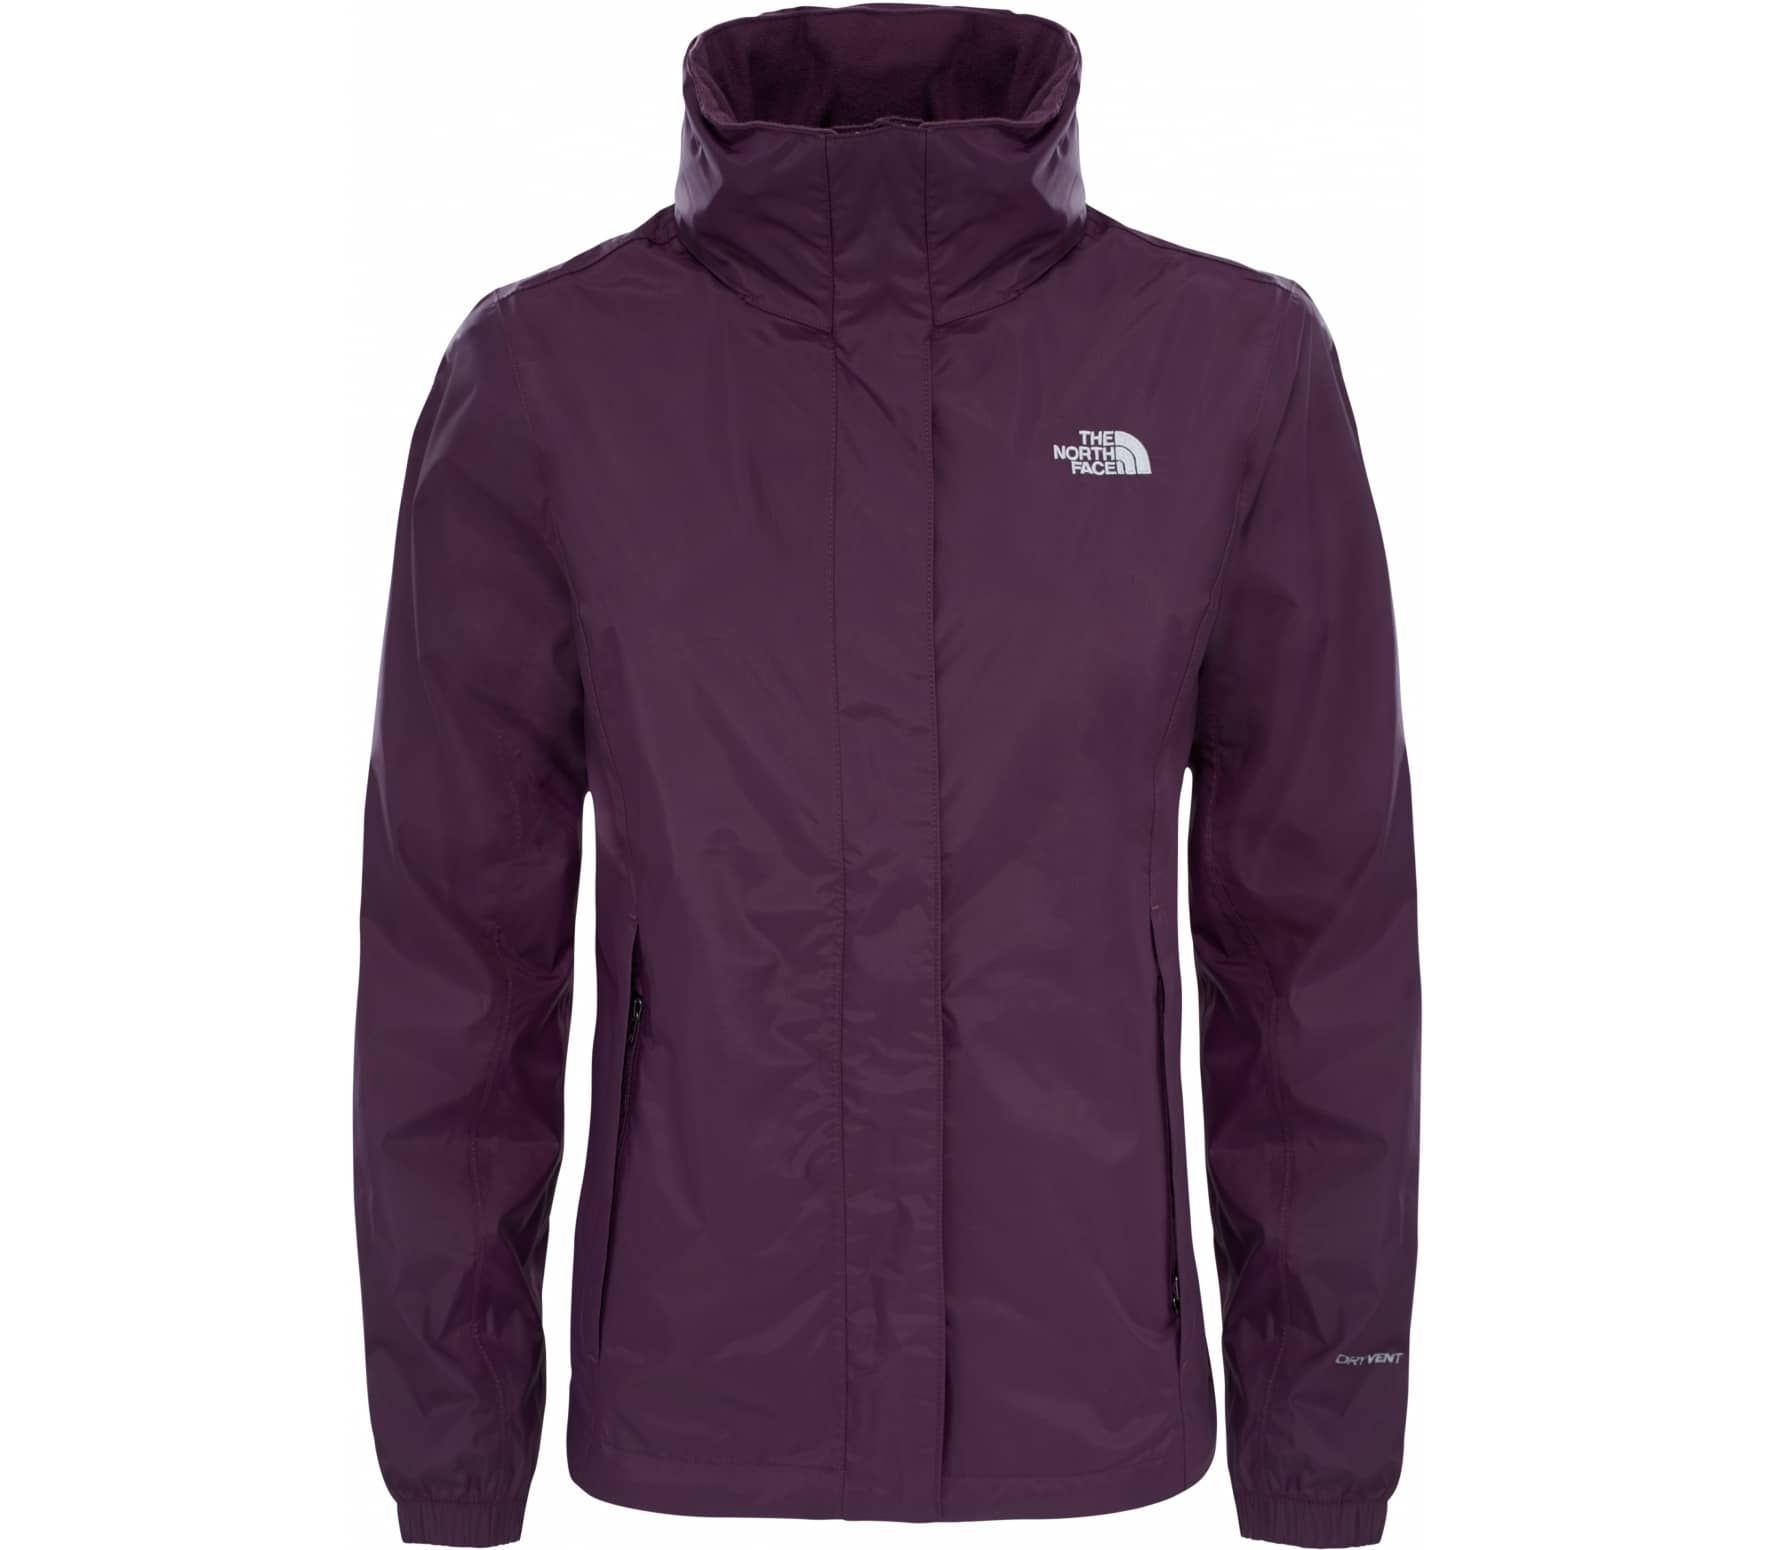 the north face resolve 2 damen regenjacke violett im online shop von keller sports kaufen. Black Bedroom Furniture Sets. Home Design Ideas